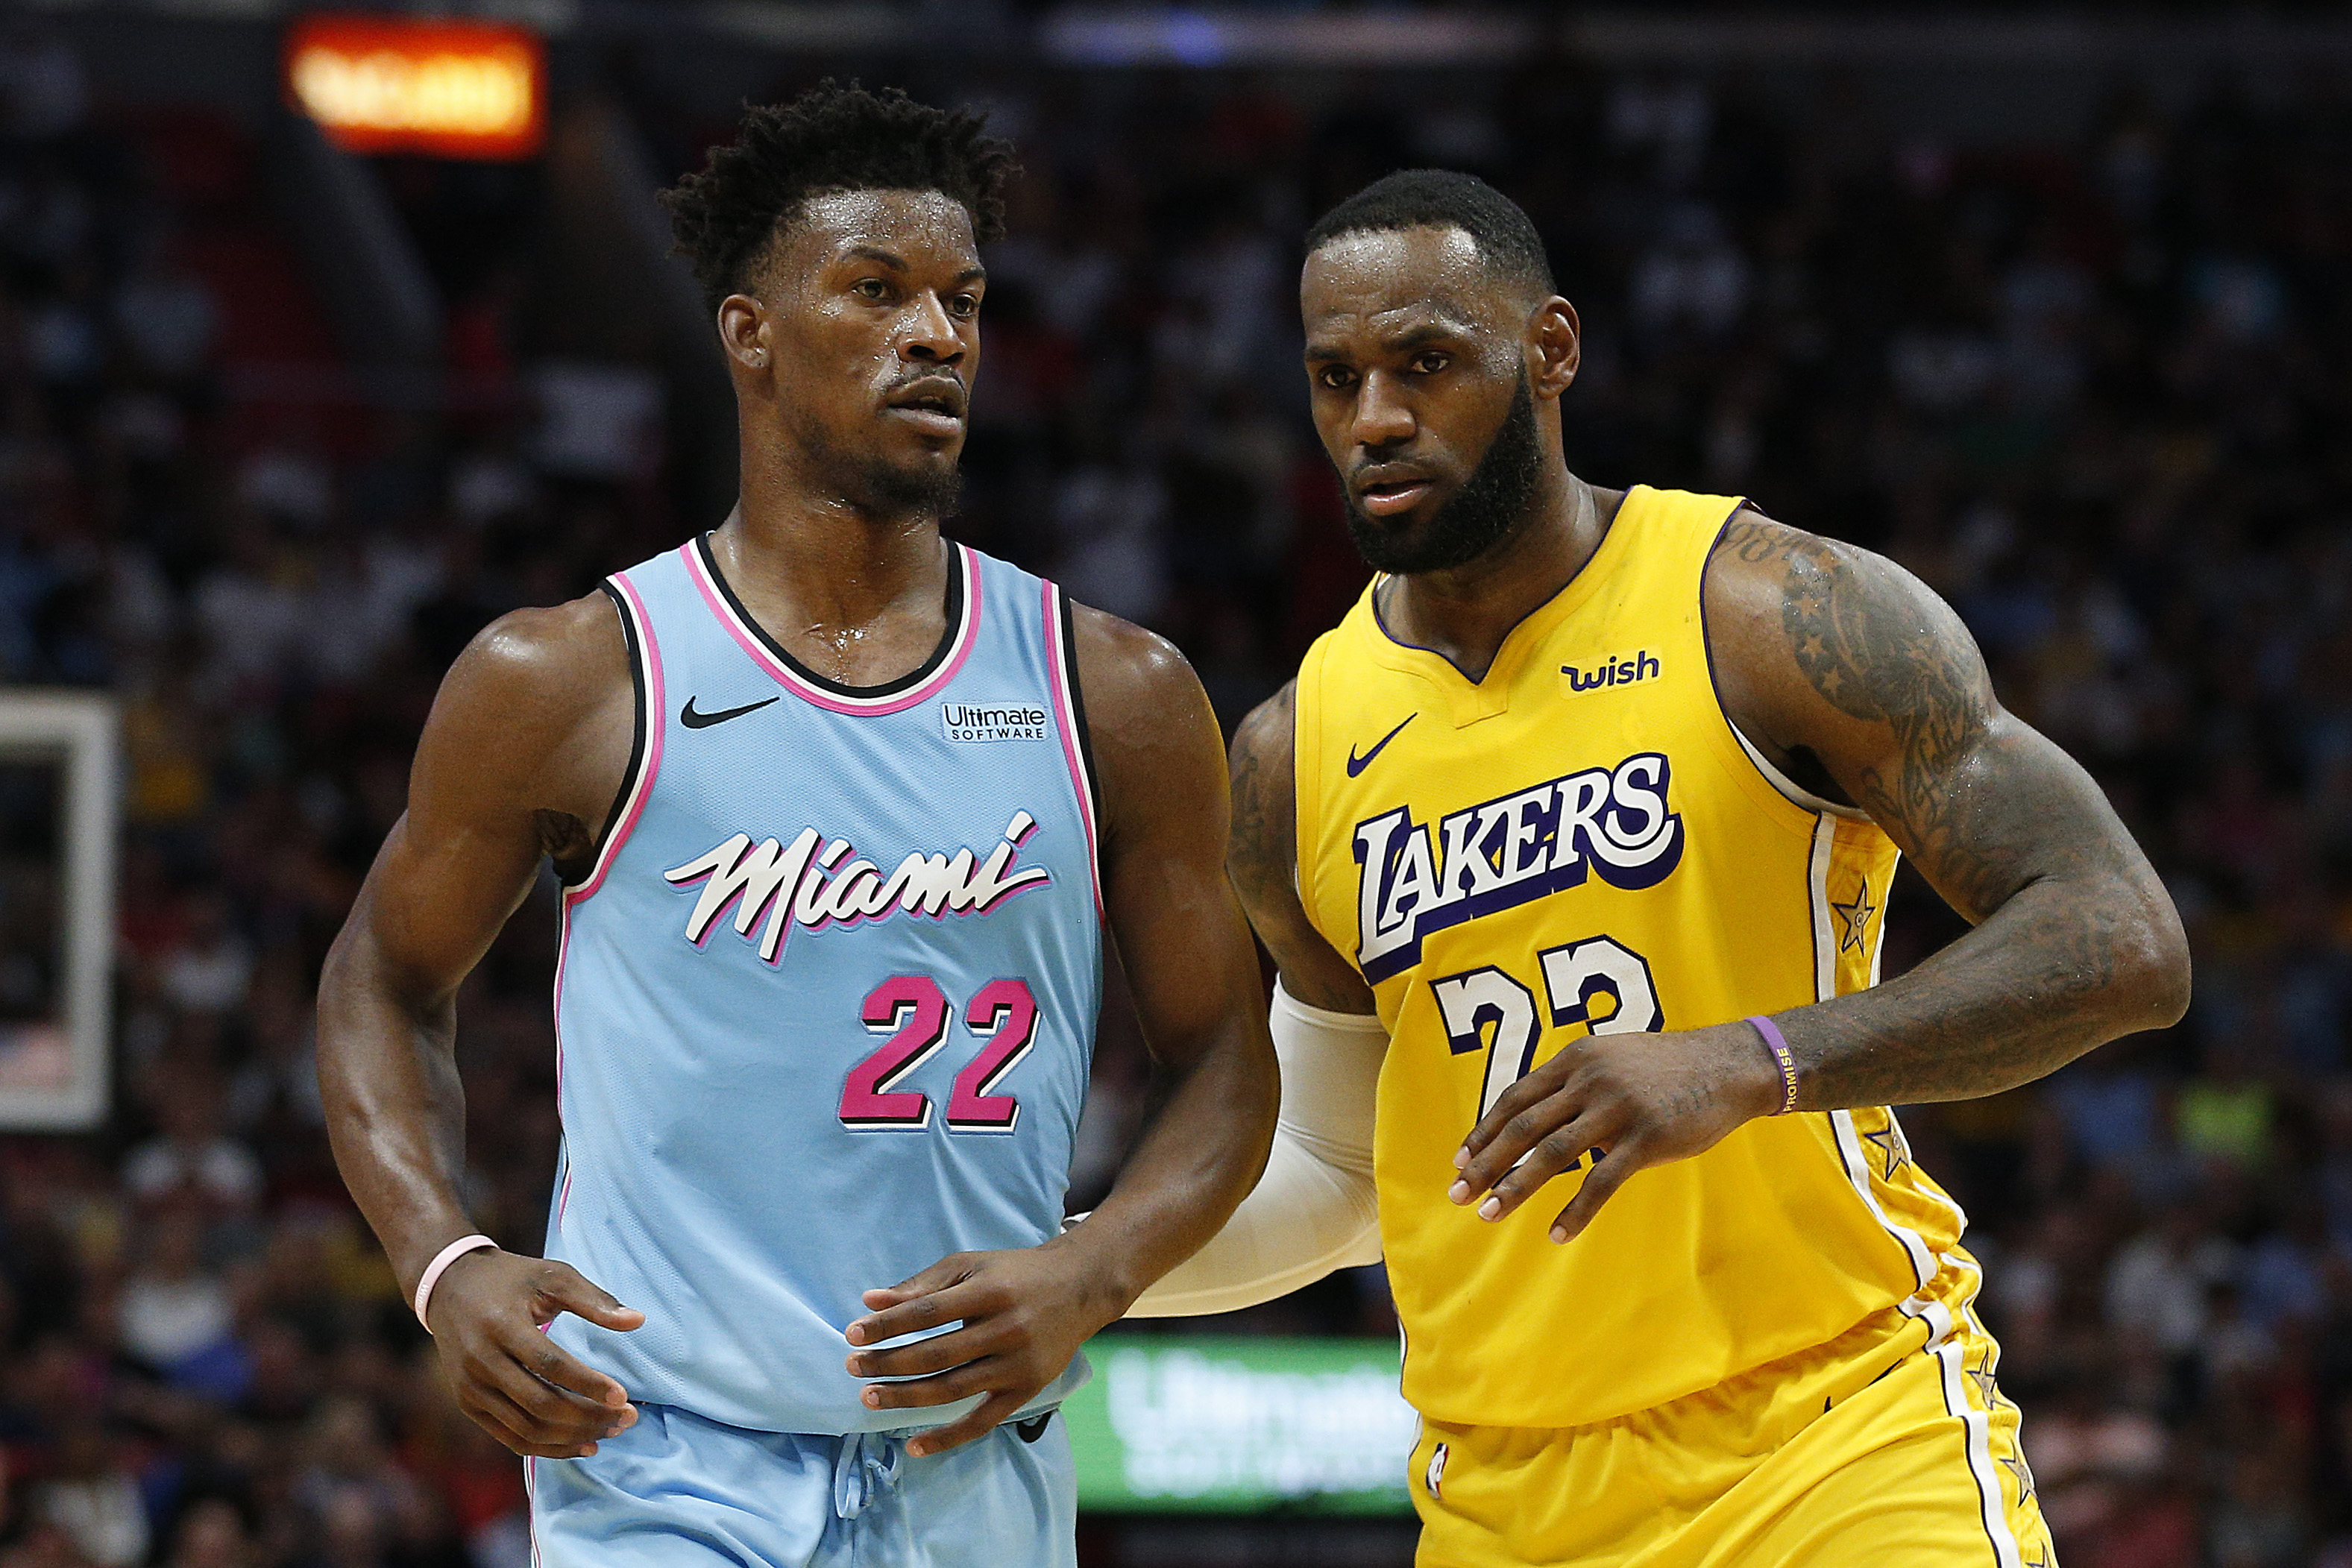 Nba Finals Schedule Tonight Lakers Vs Heat Game 1 Live Stream Tv Channel And Odds